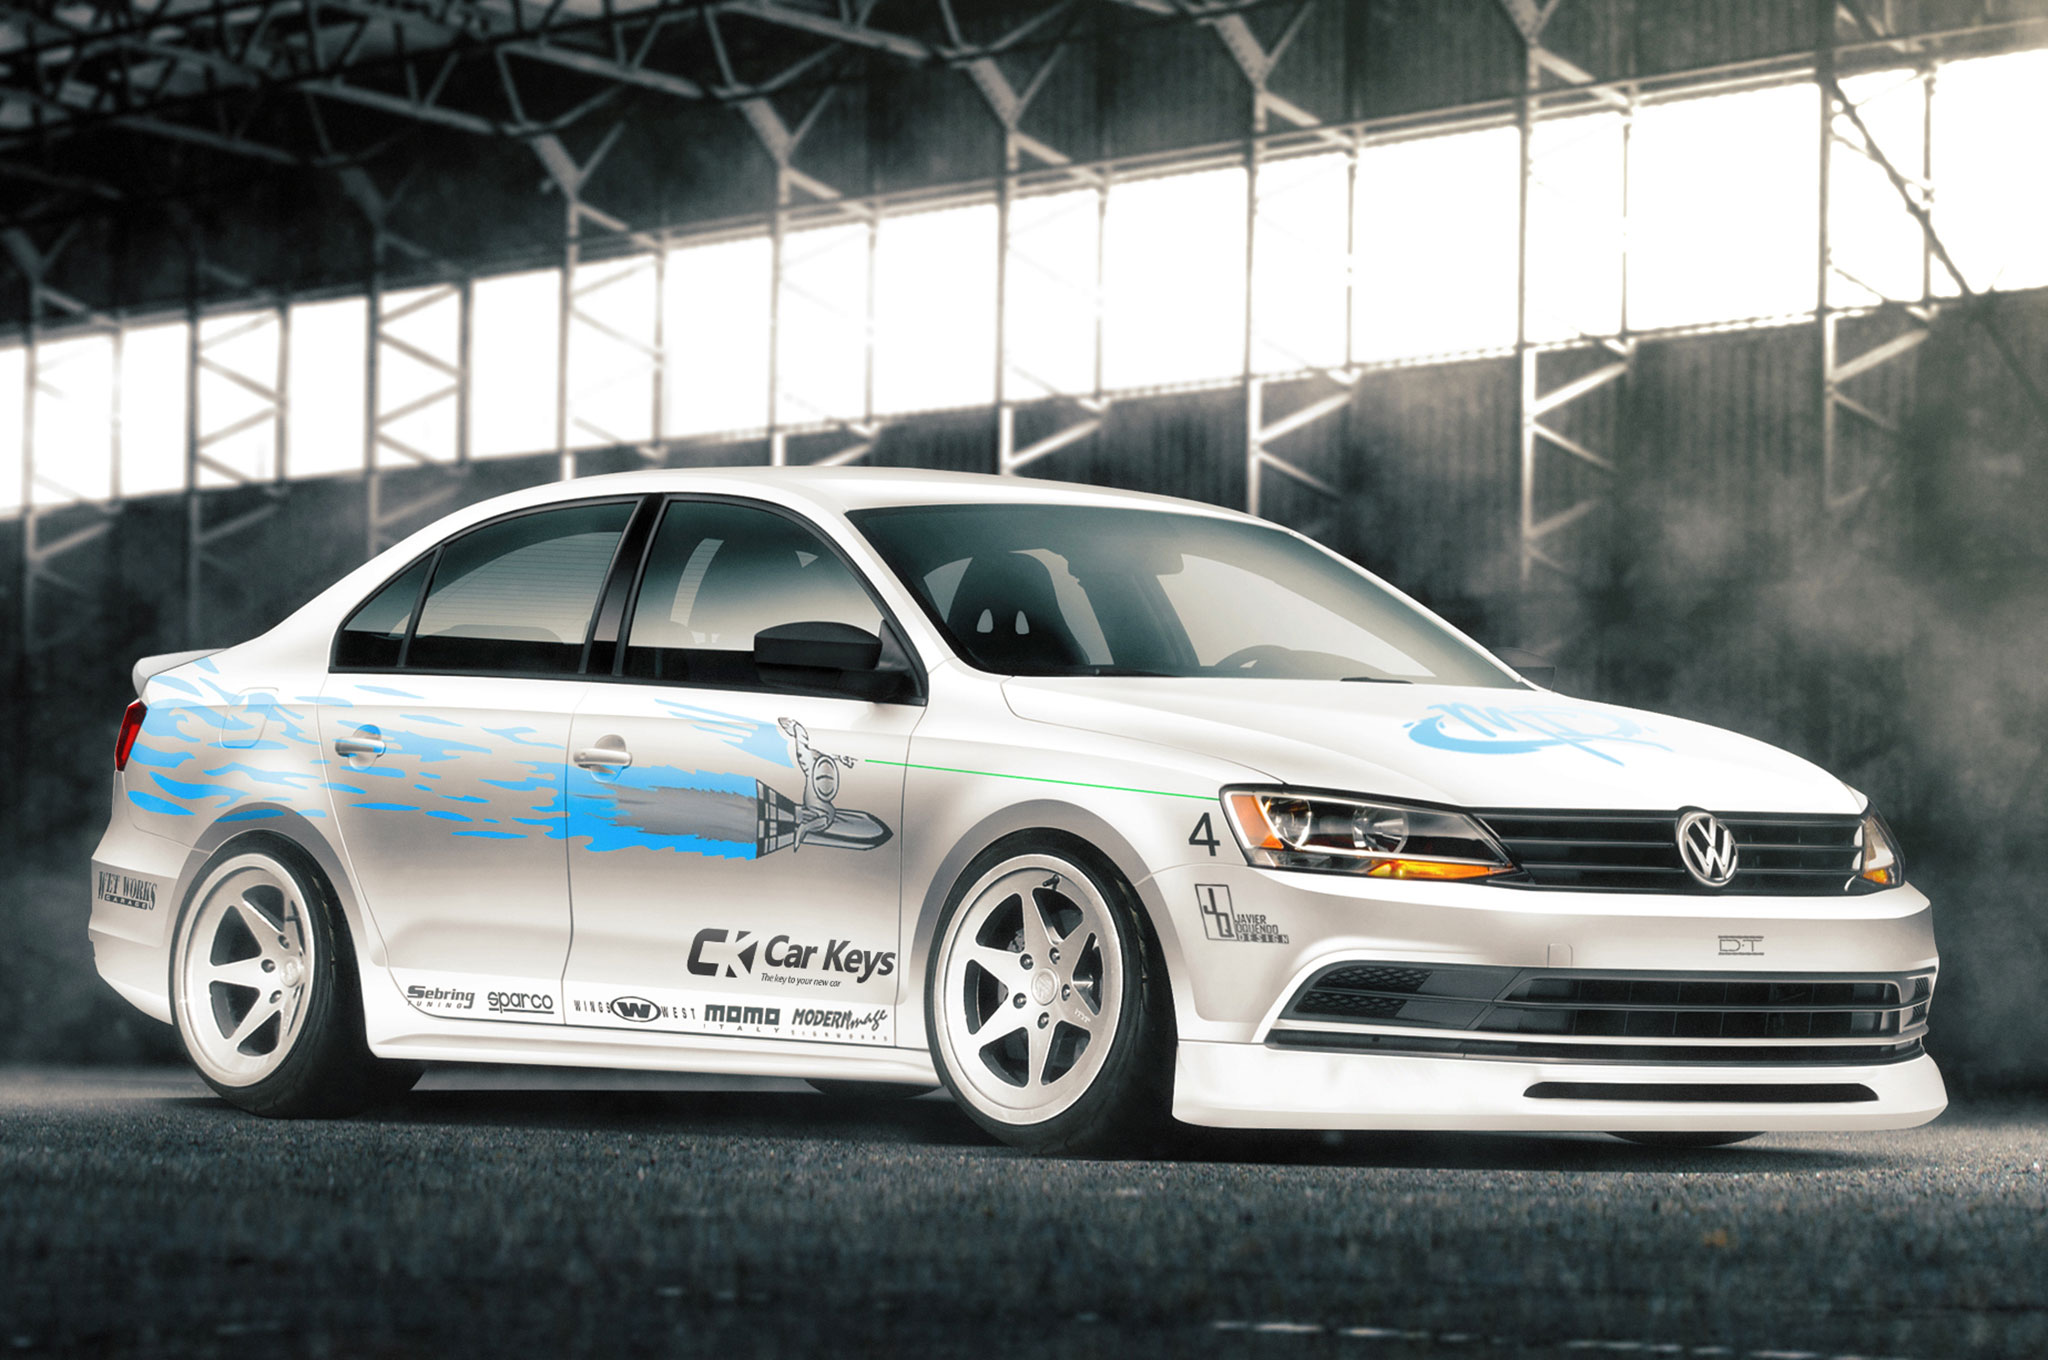 The Fast and the Furious modern renders Volkswagen Jetta